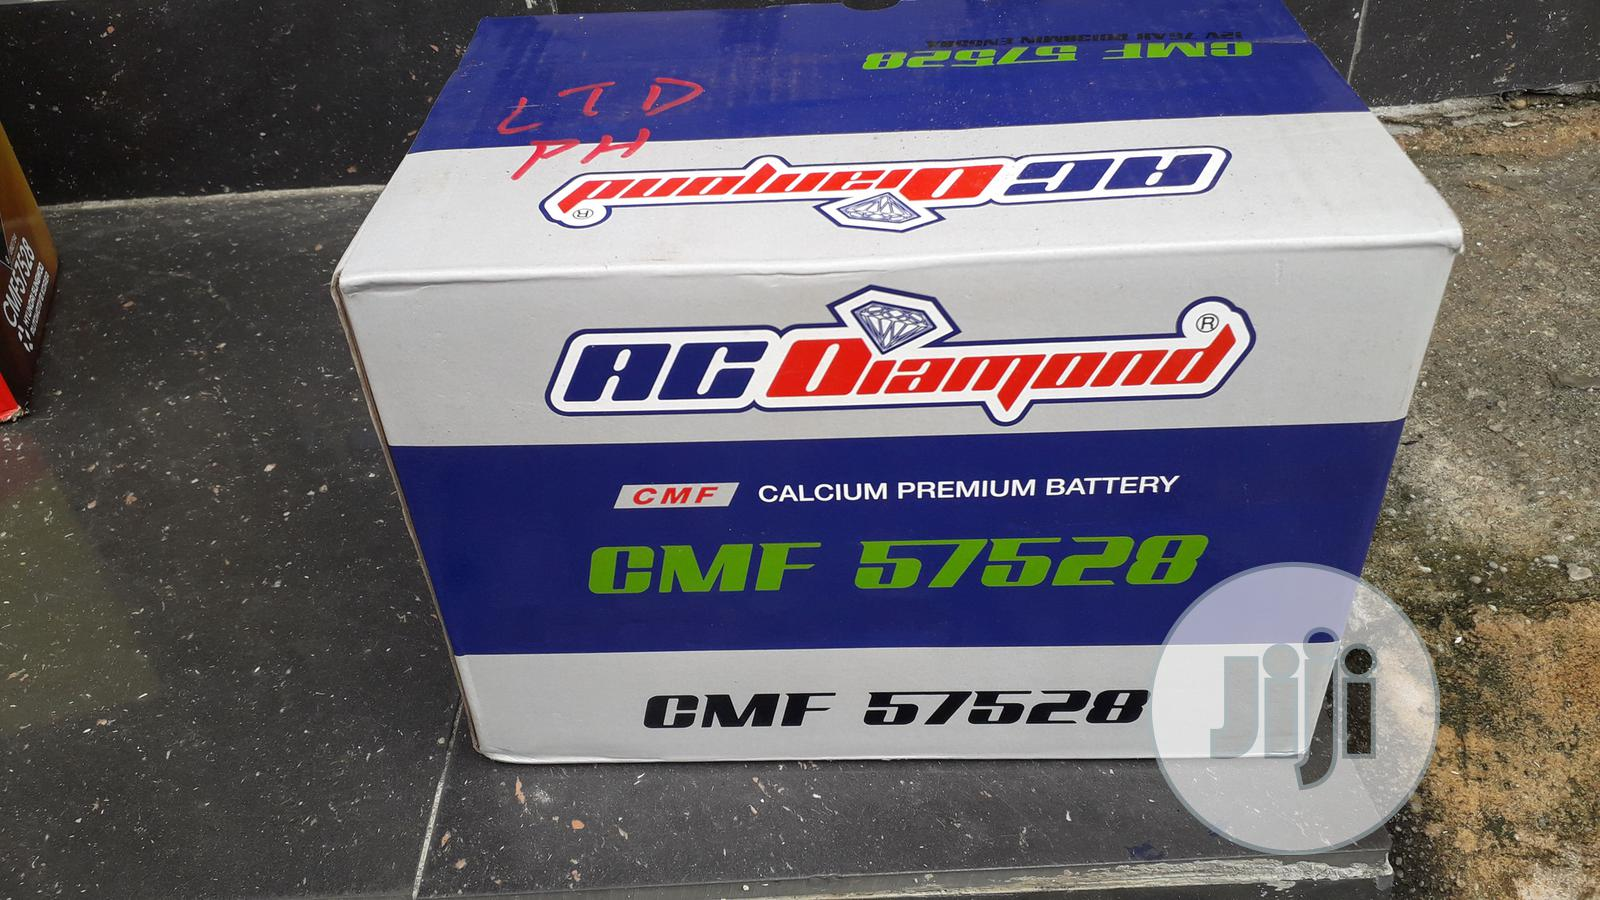 Archive: Car Battery And Motor Spare Parts Wholesale And Retail